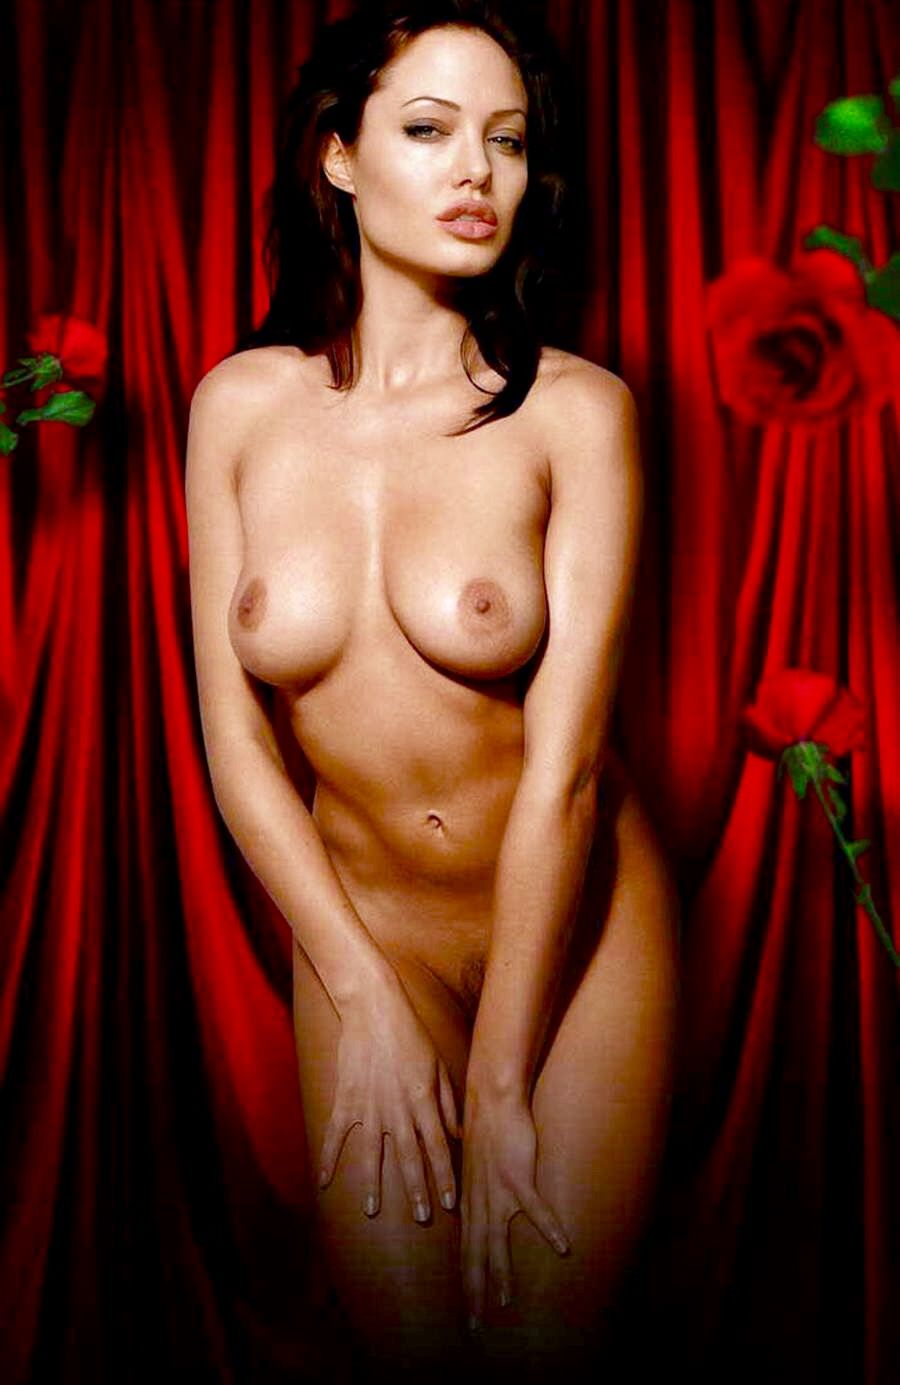 Angelina jolie naked pic with girls photo 55